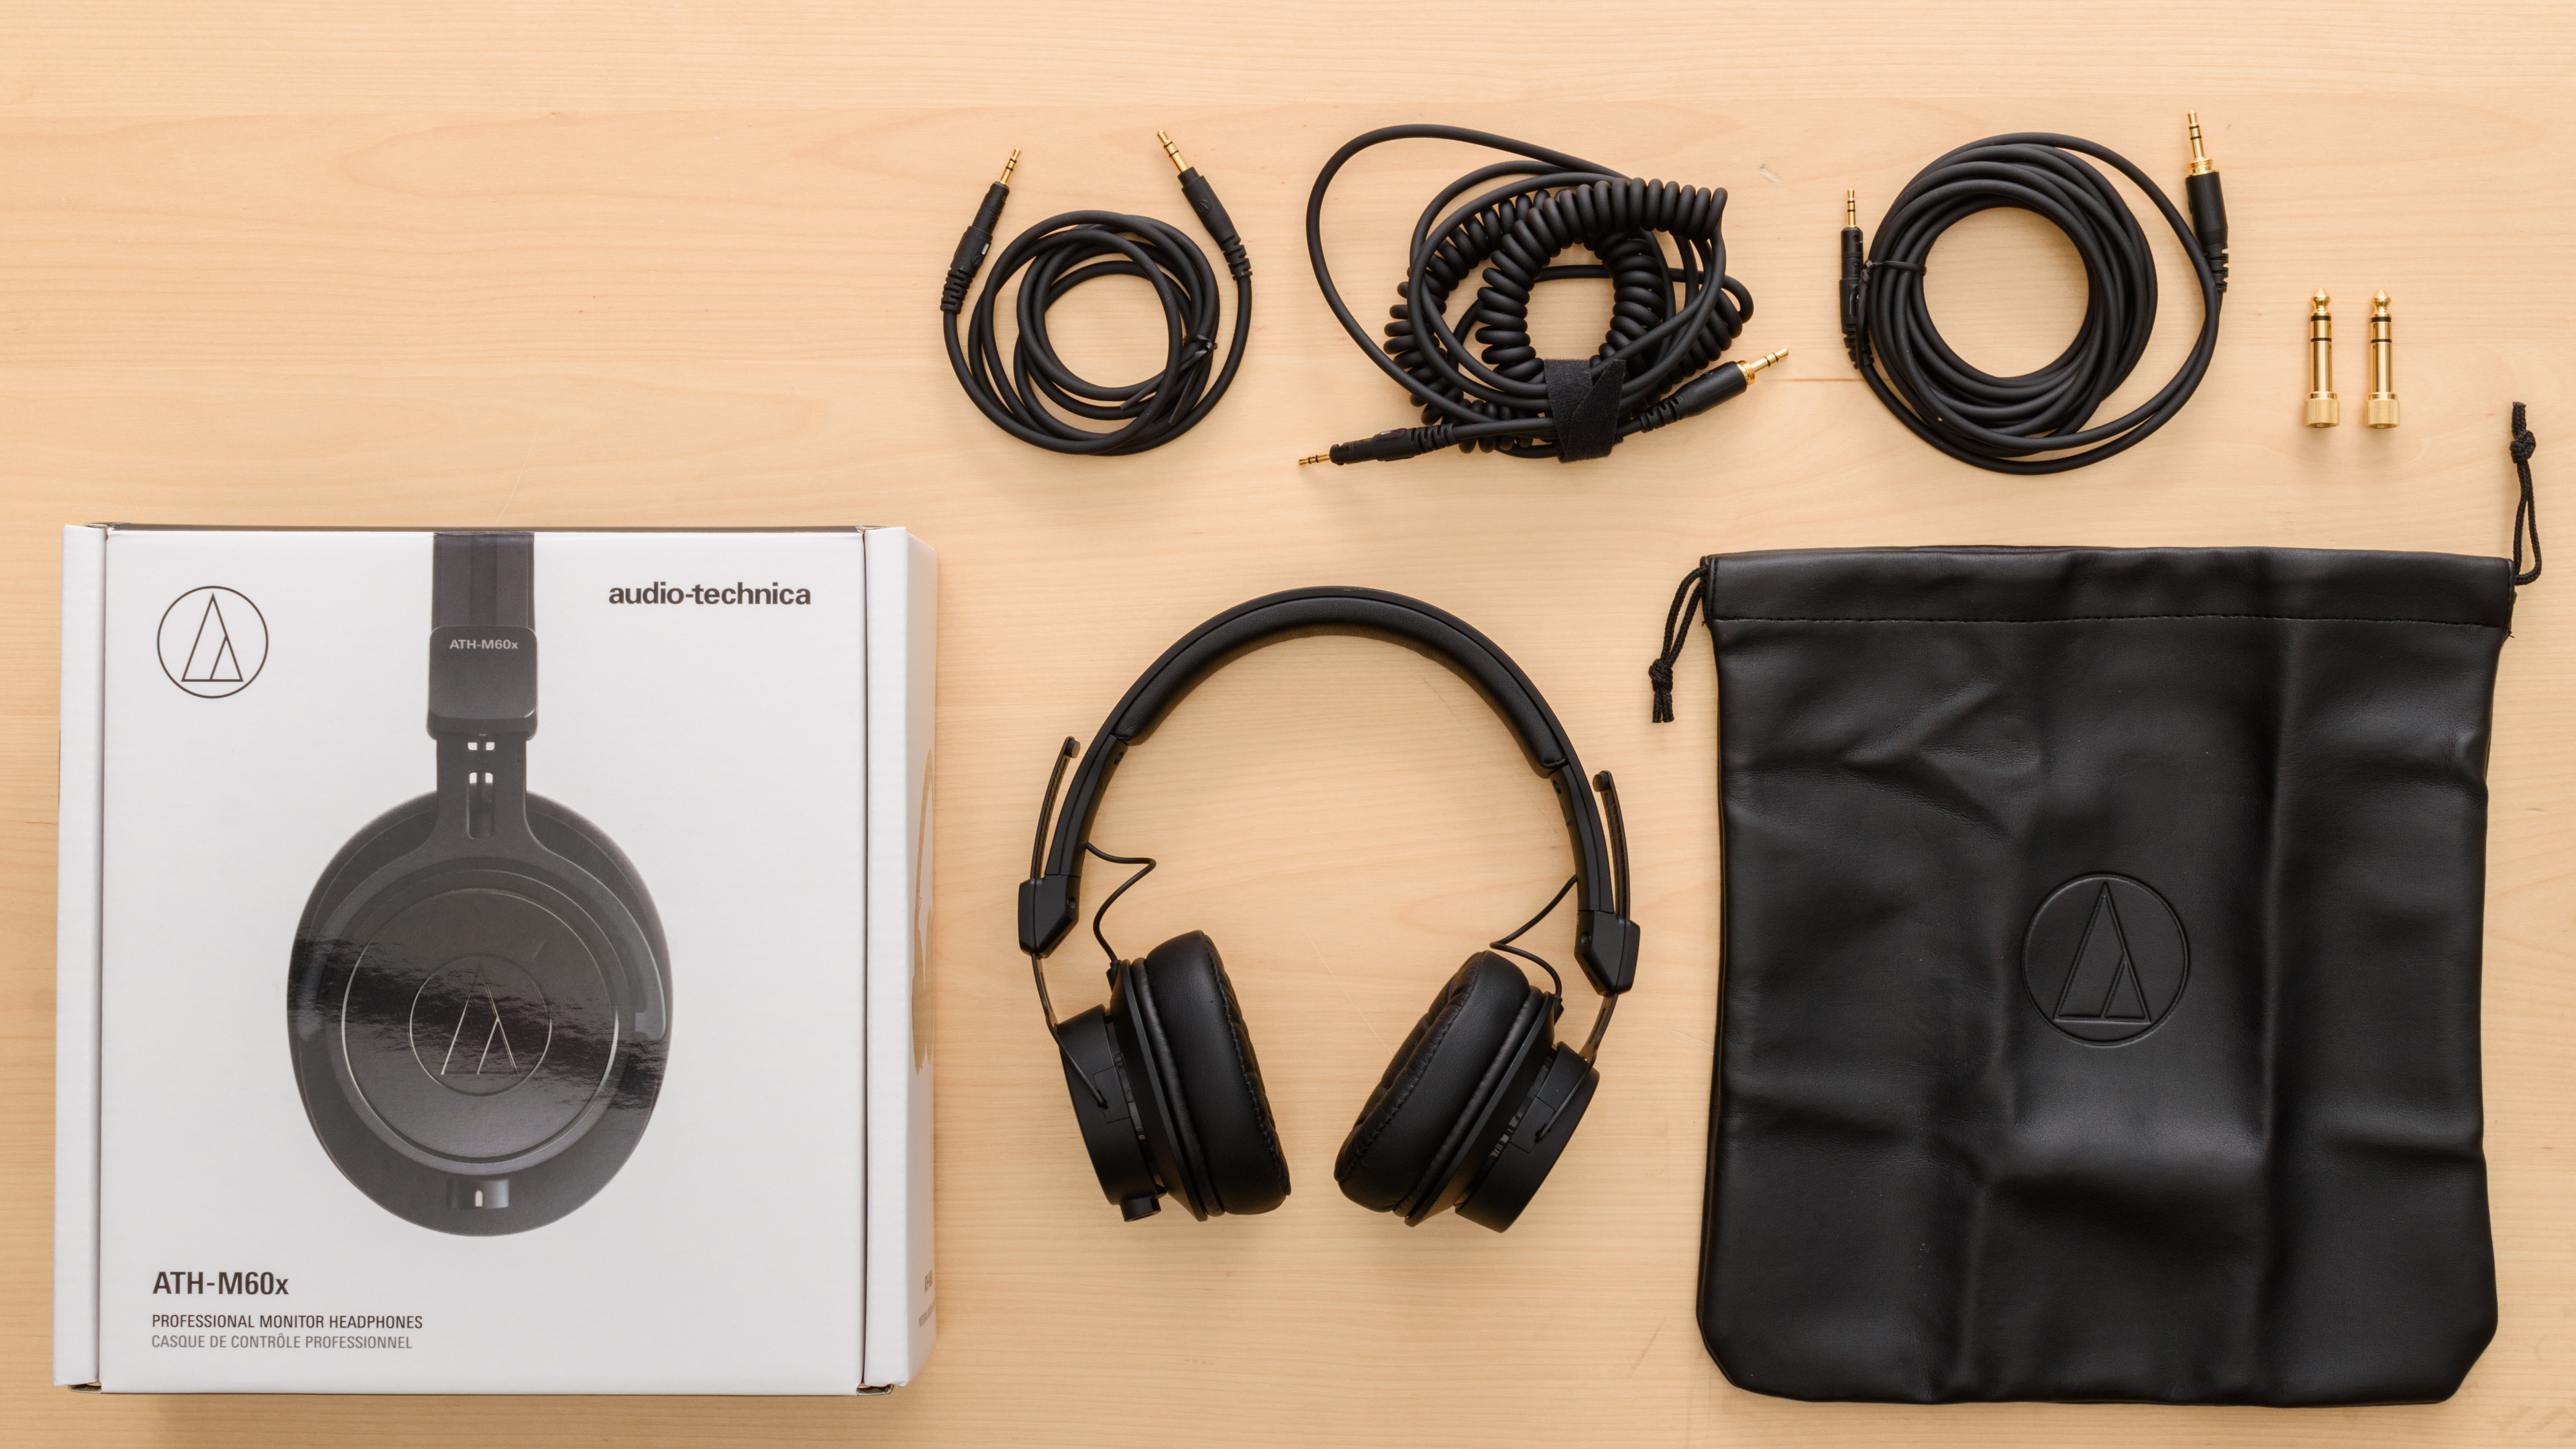 Audio Technica Ath M60x Review Earphone Solid Bass Cks1100is In The Box Picture